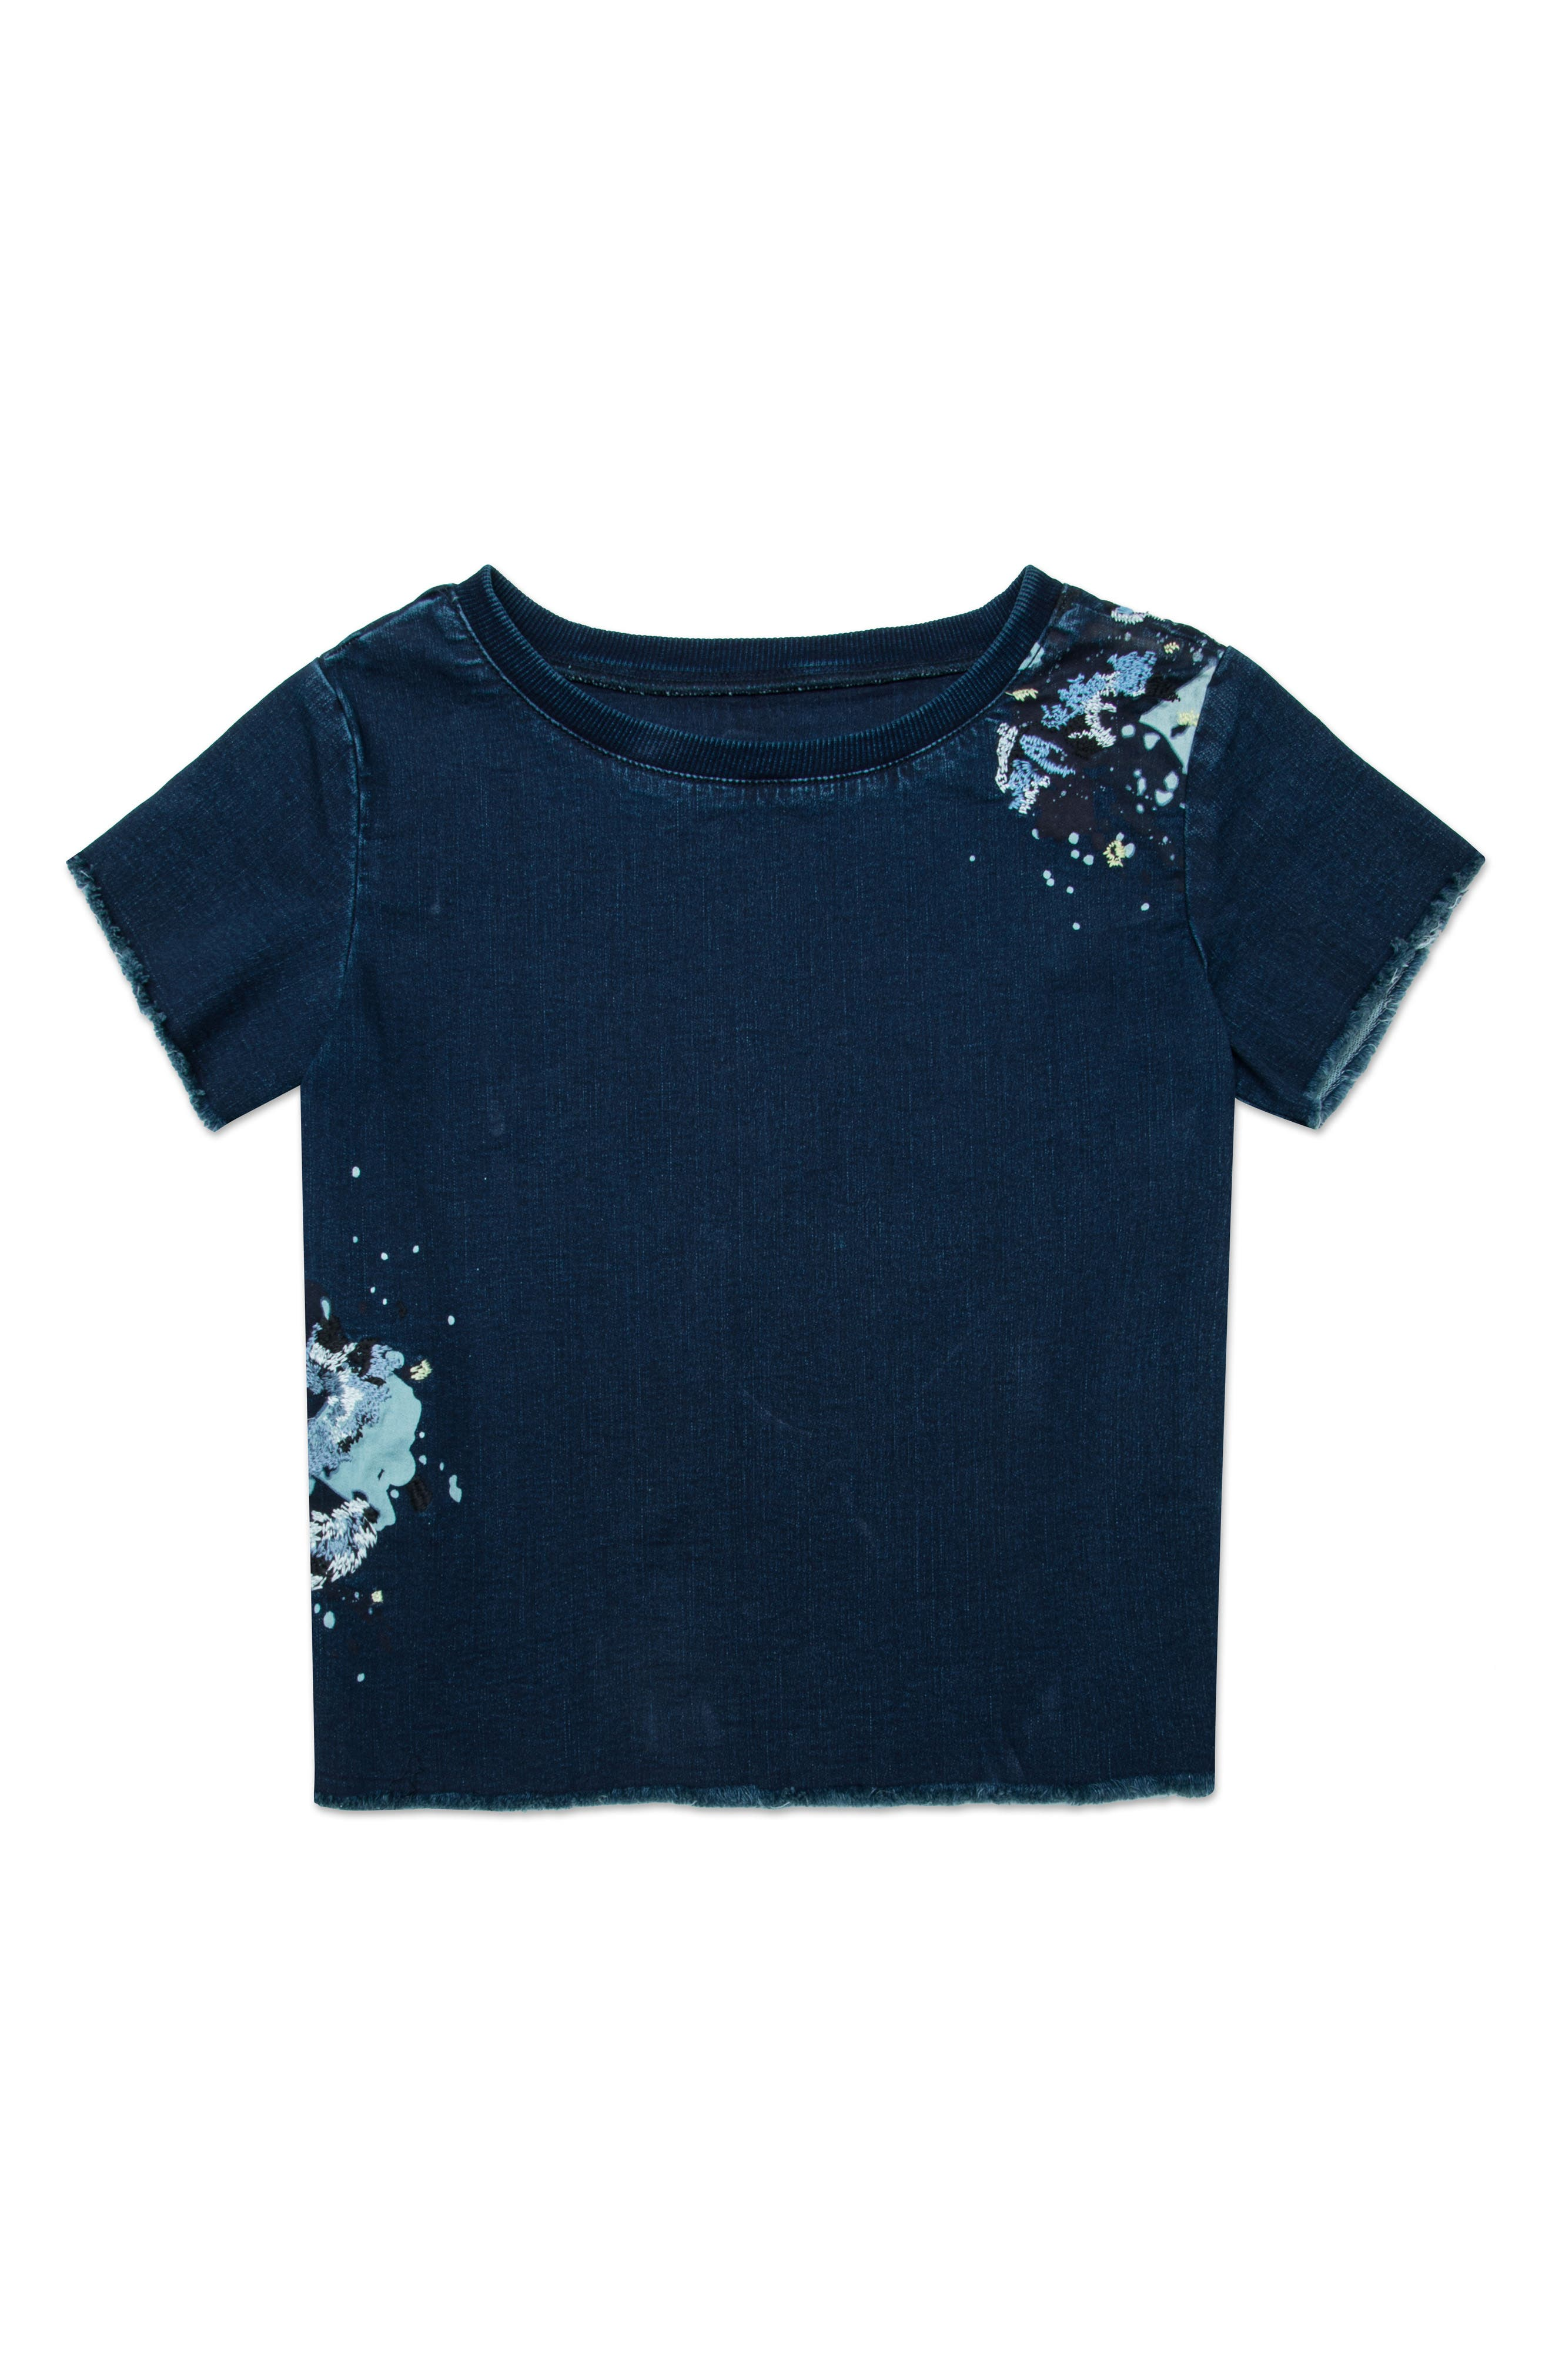 adriano goldschmied kids Embroidered Denim Top,                             Main thumbnail 1, color,                             Splash Away